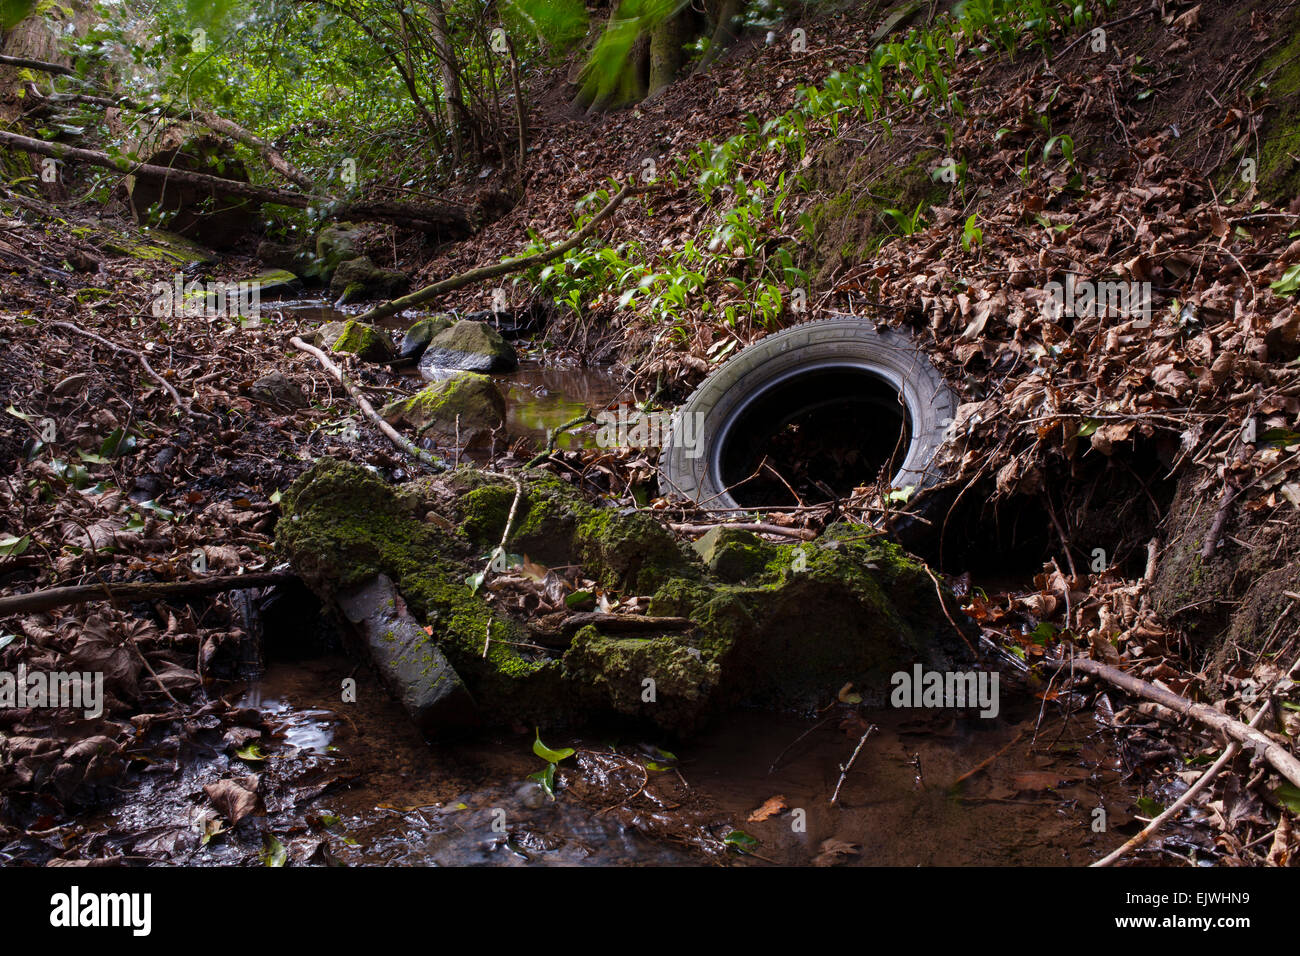 Rubbish and waste dumped in a woodland stream. - Stock Image